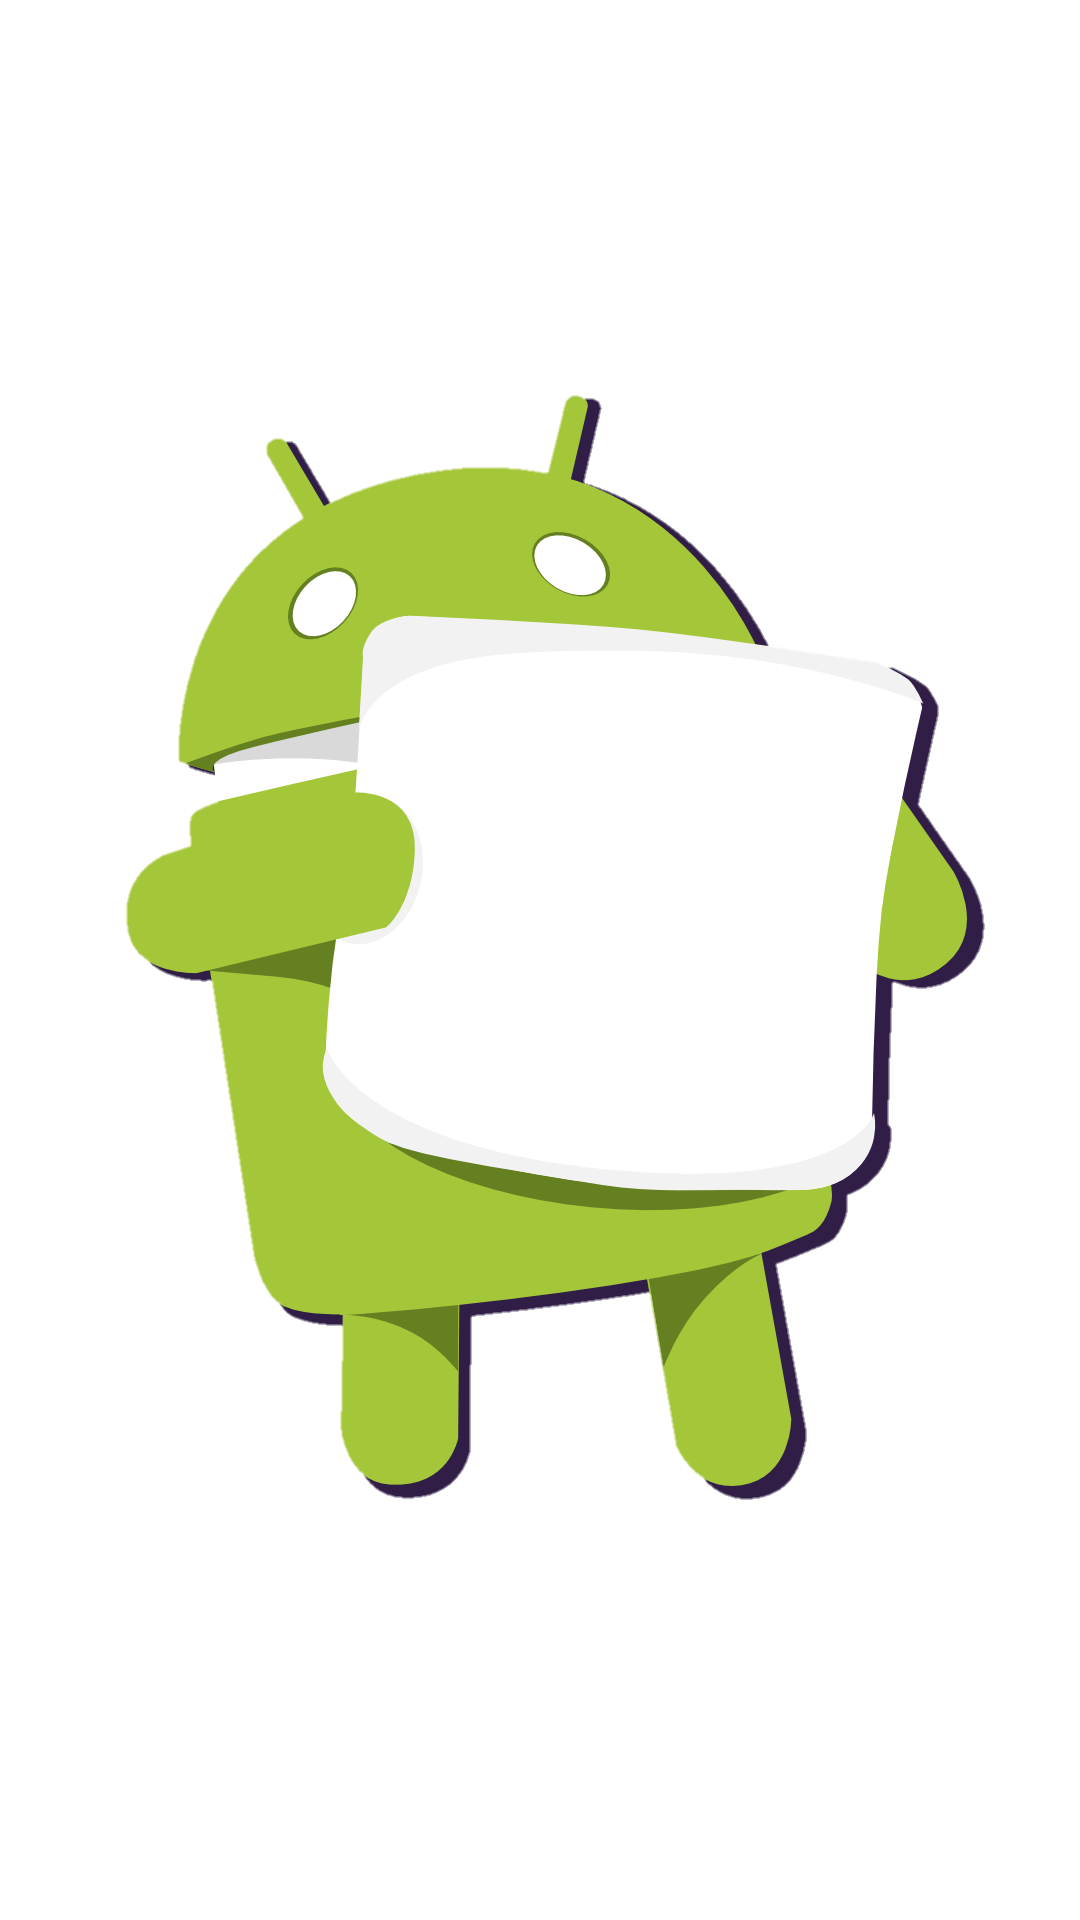 Android marshmallow png. The reporter